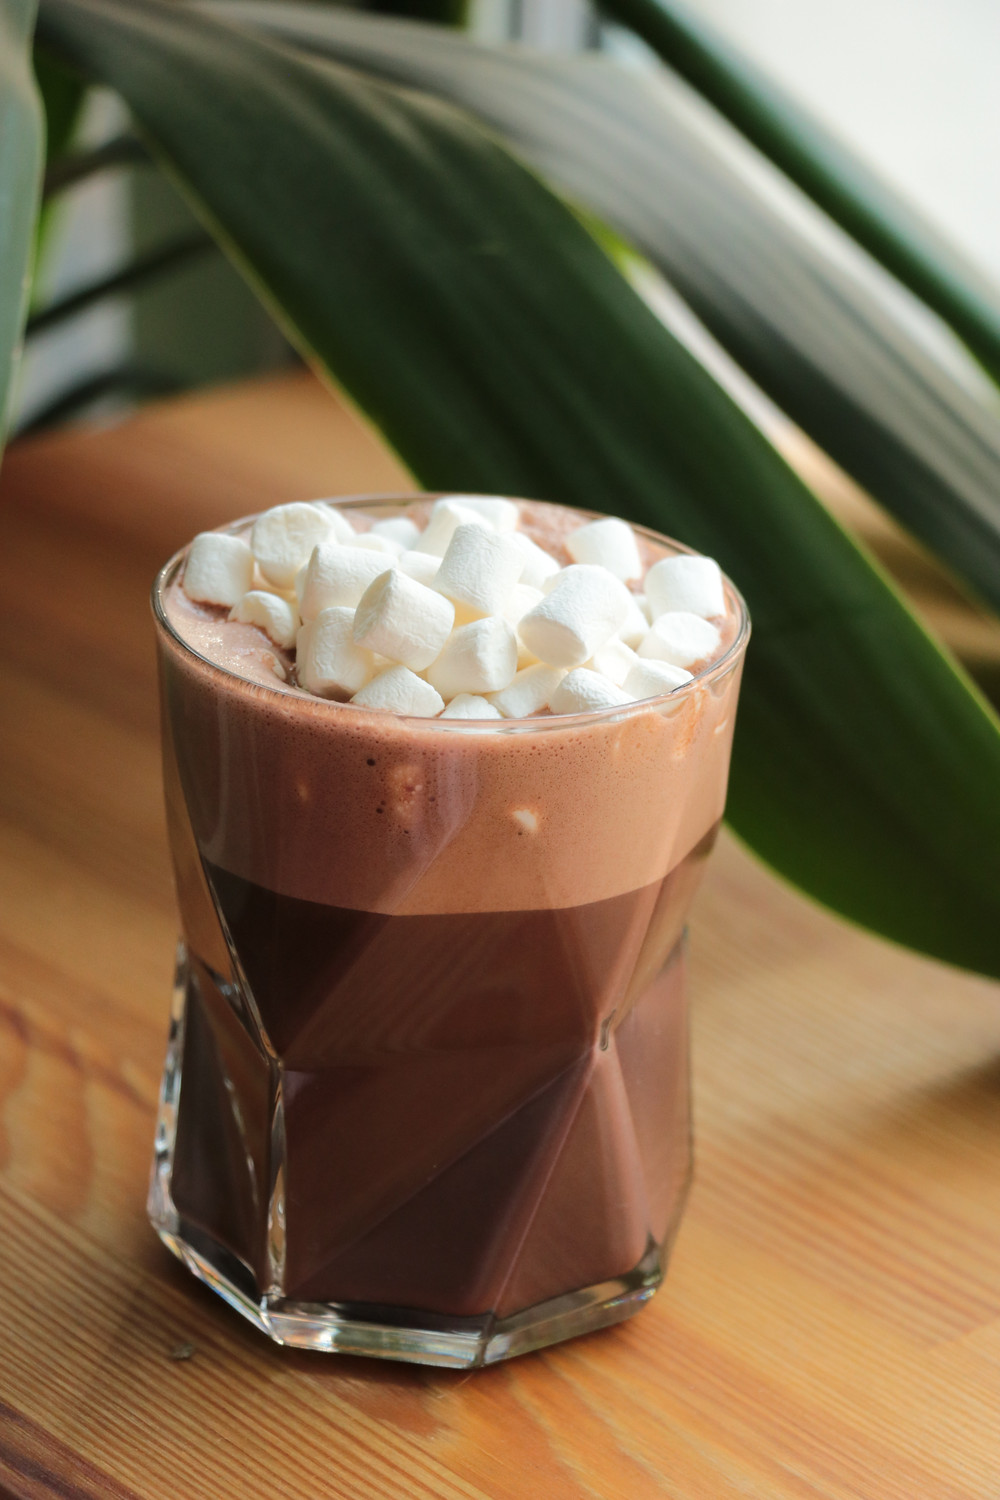 Hot chocolate and marshmallows, Christmas recipes